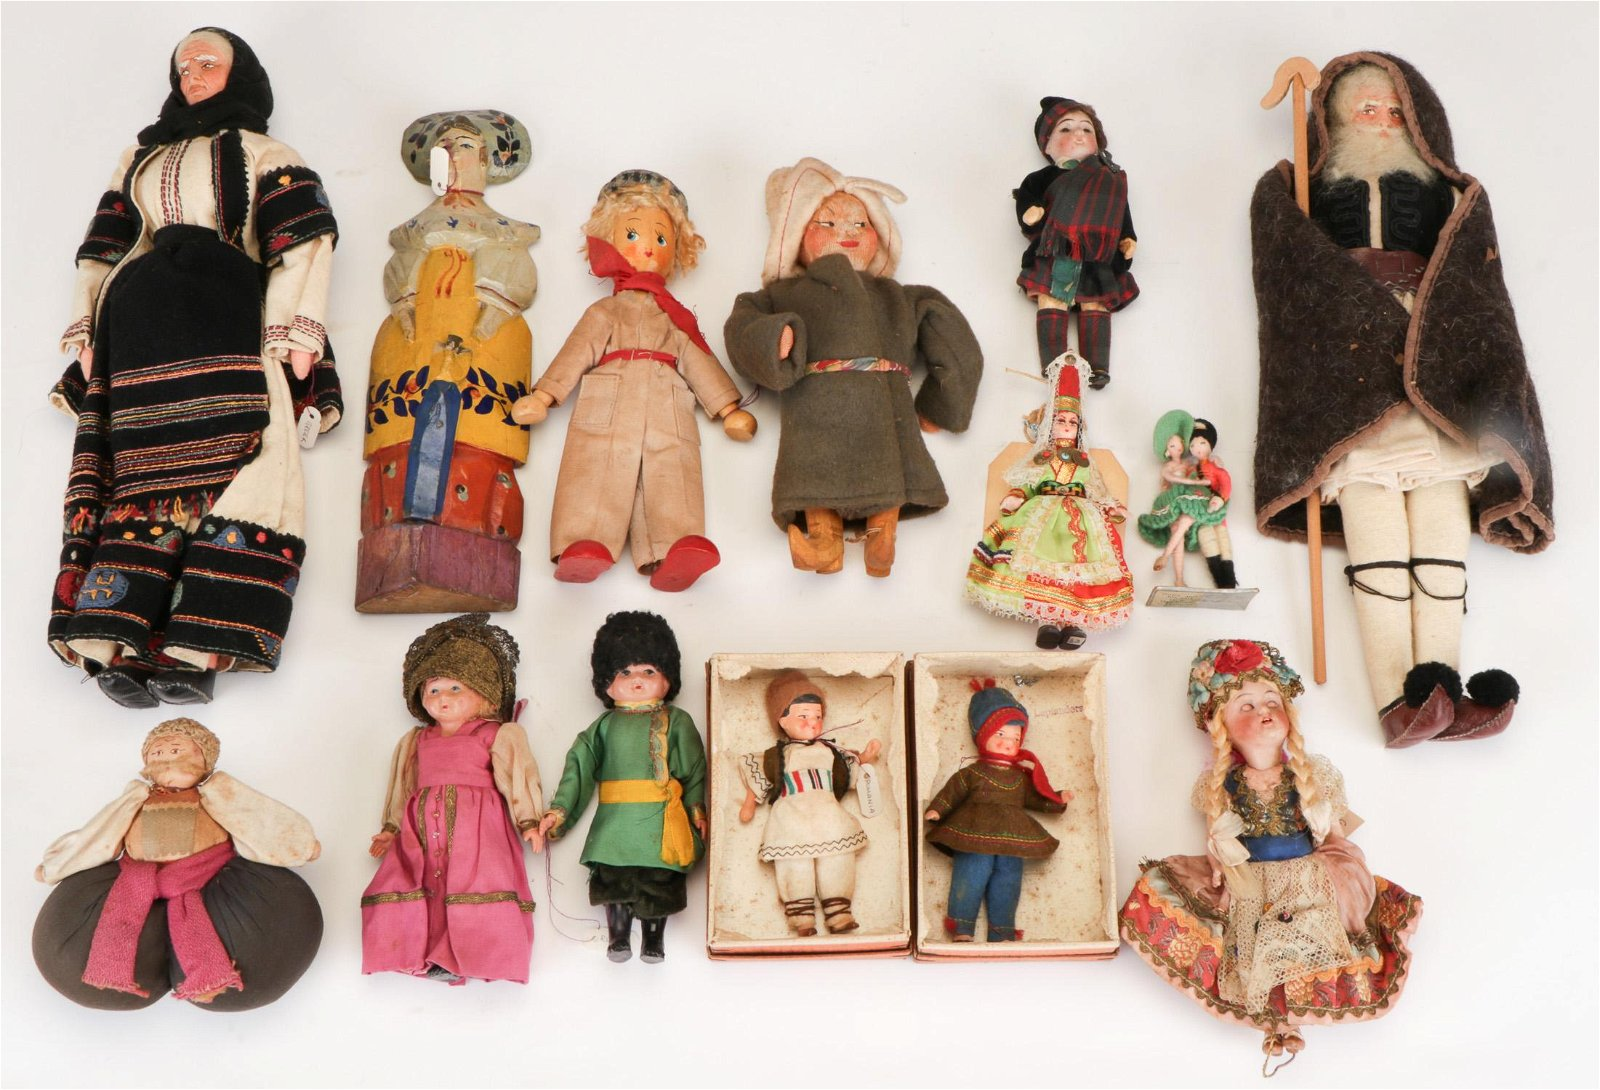 Group of Antique and Vintage Ethnic Dolls